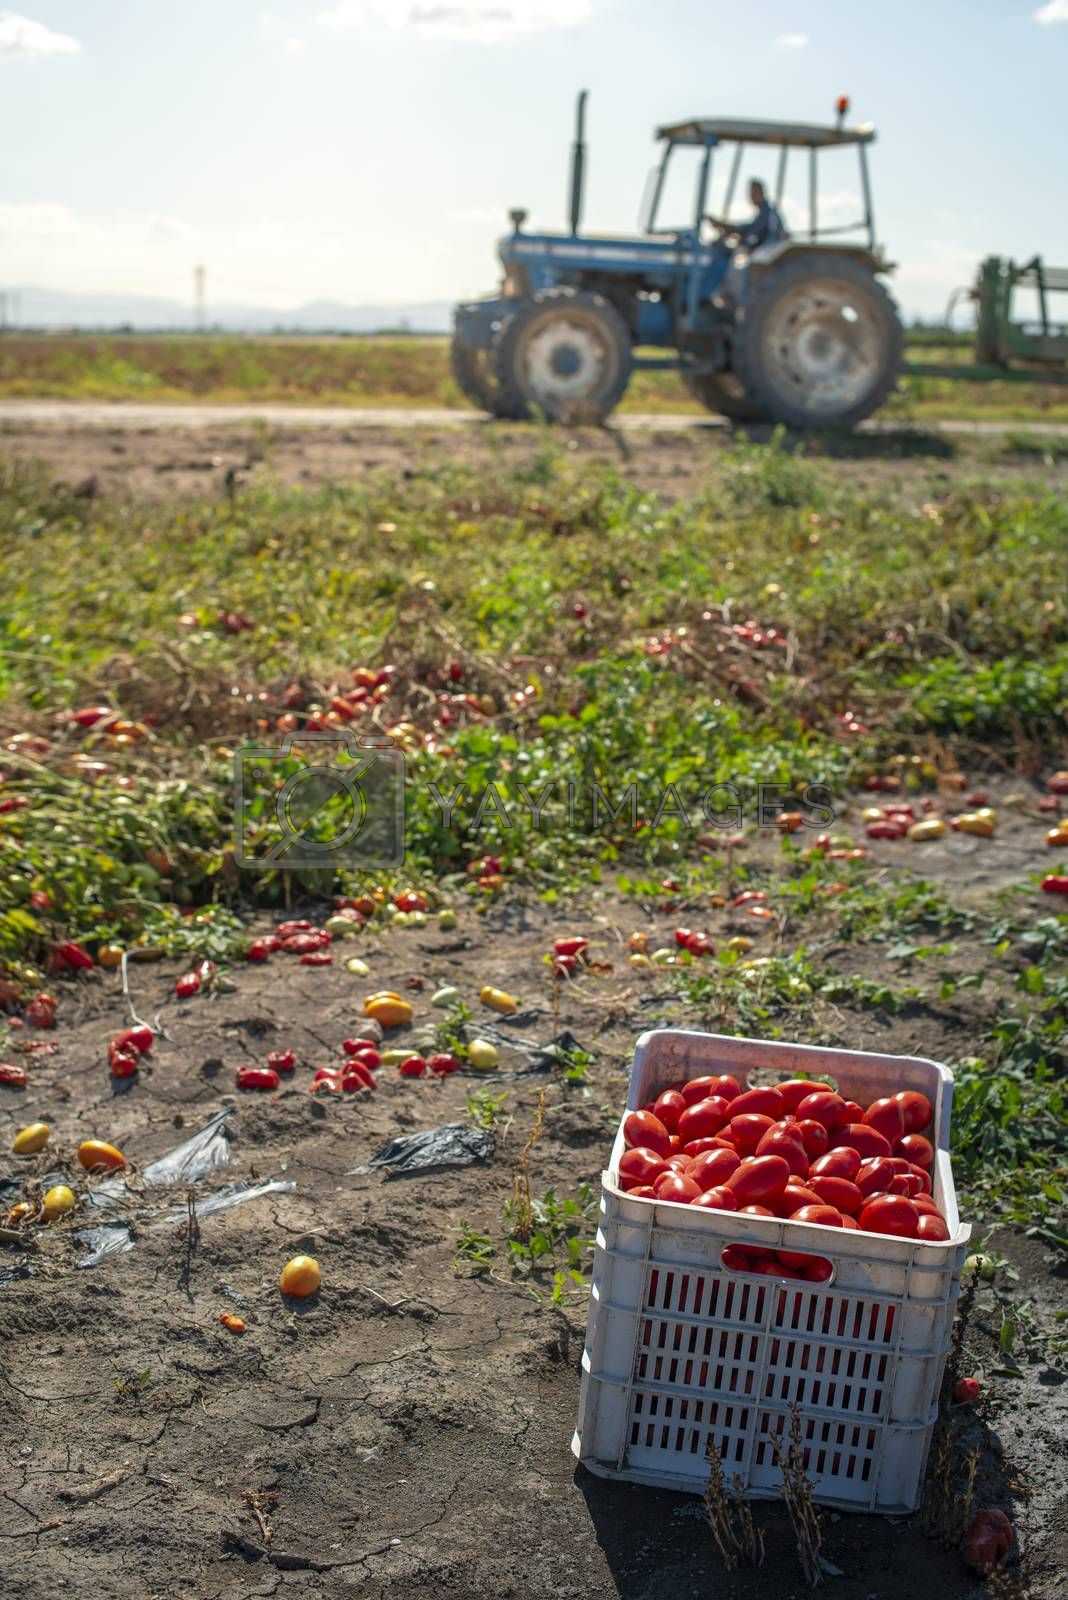 Picking tomatoes manually in crates. Tomato farm and tractor. Tomato variety for canning. Growing tomatoes in soil on the field. Sunny day.